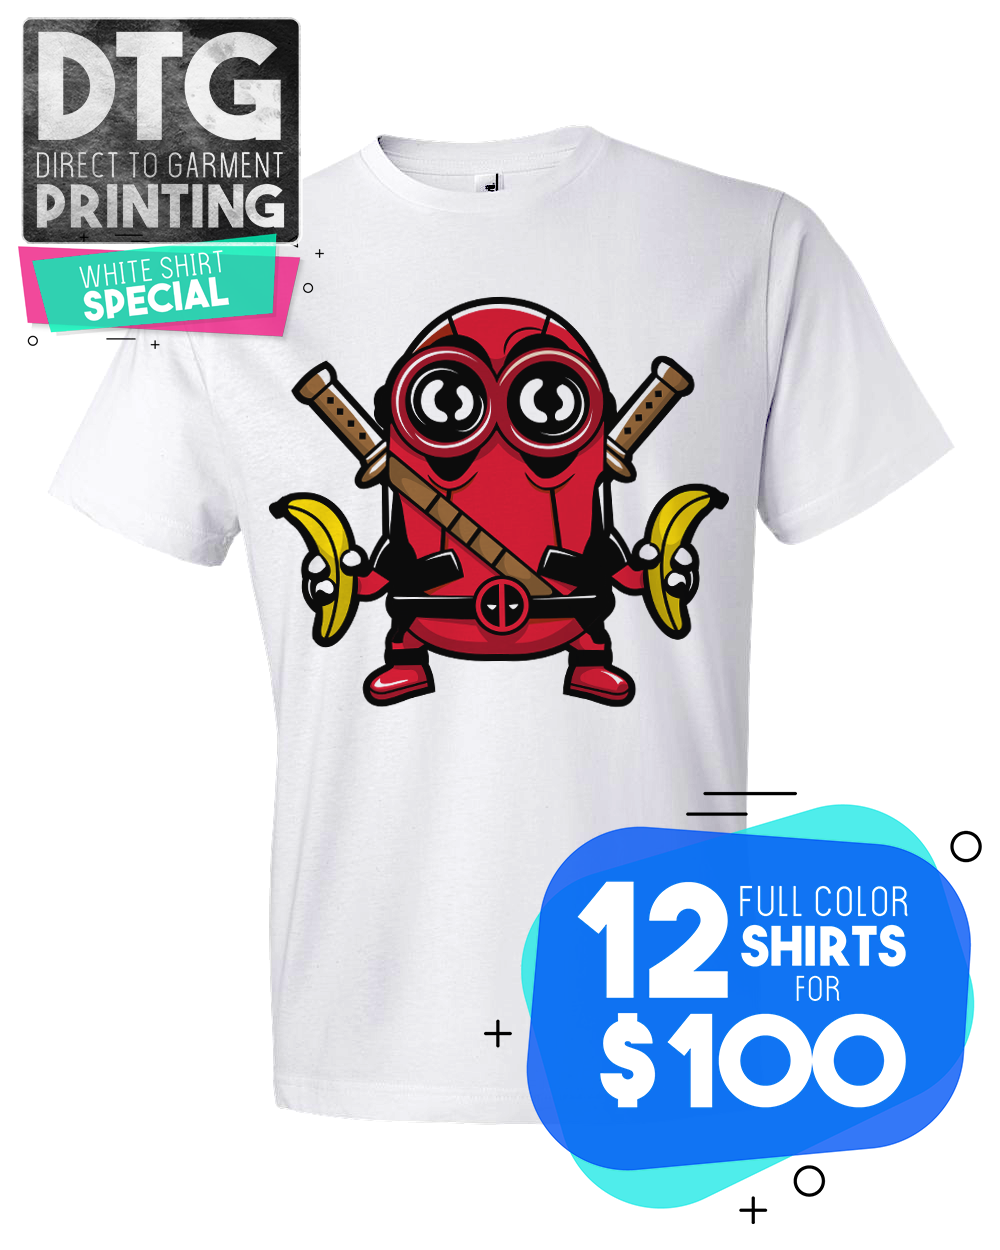 12 Full Color Custom Printed White Tees